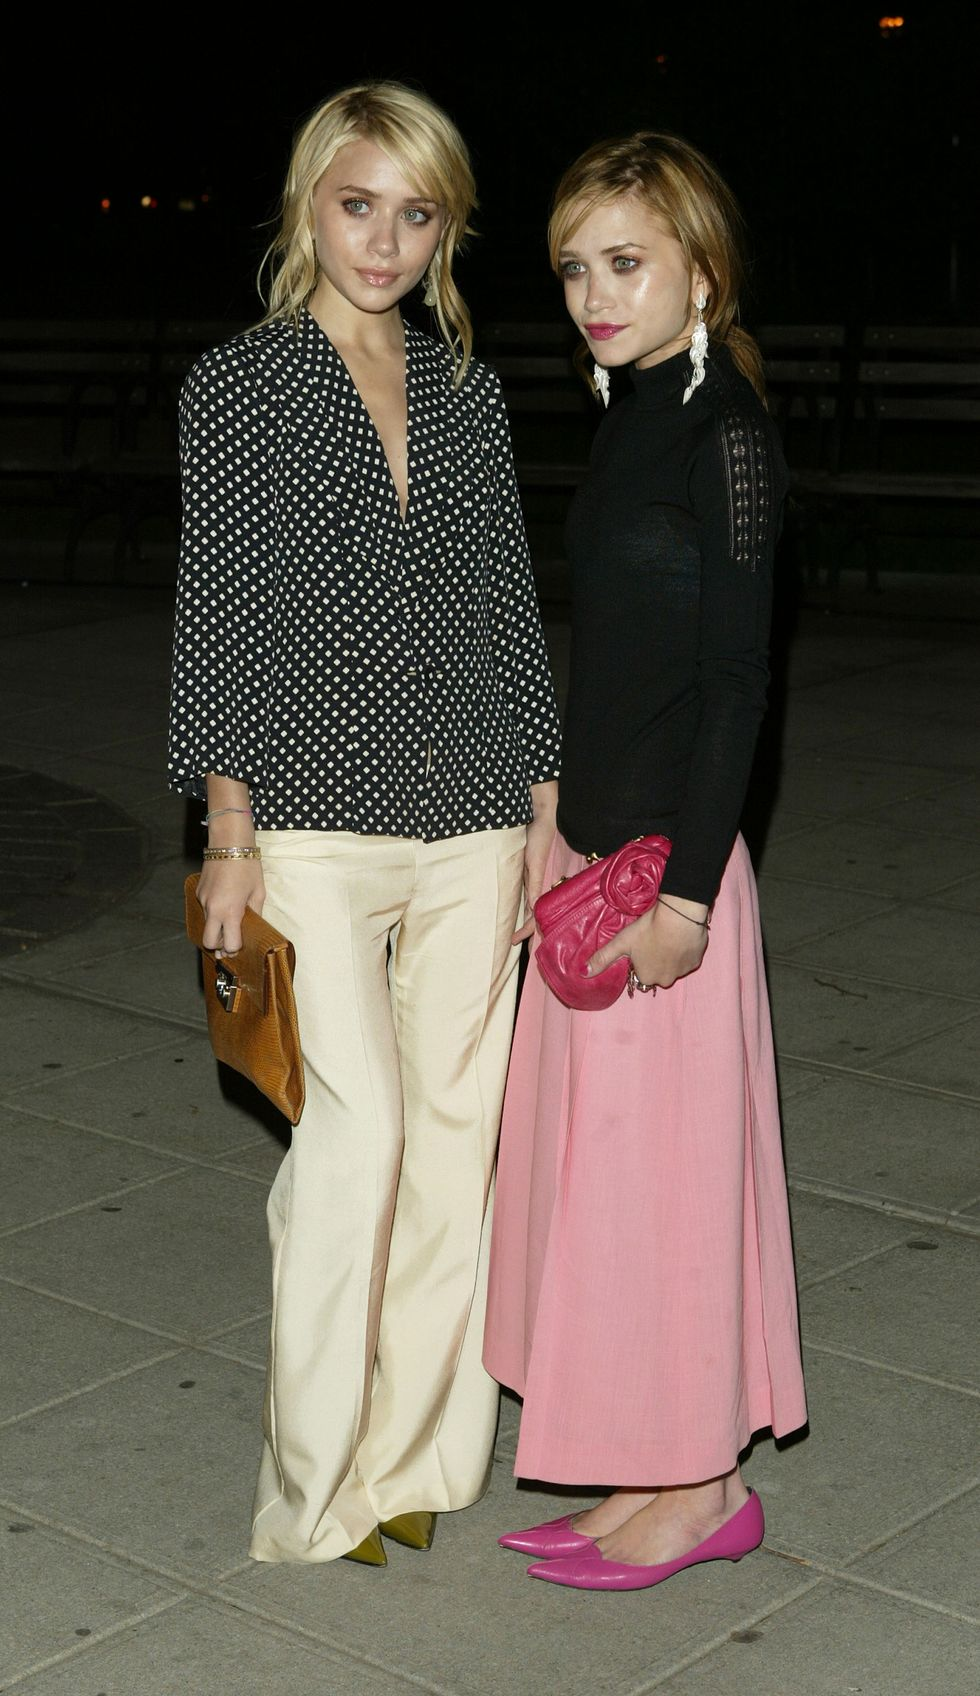 May 4, 2004 At the Vanity Fair Tribeca Film Festival party, Mary-Kate wore pops of pink, while Ashley preferred more neutral shades.